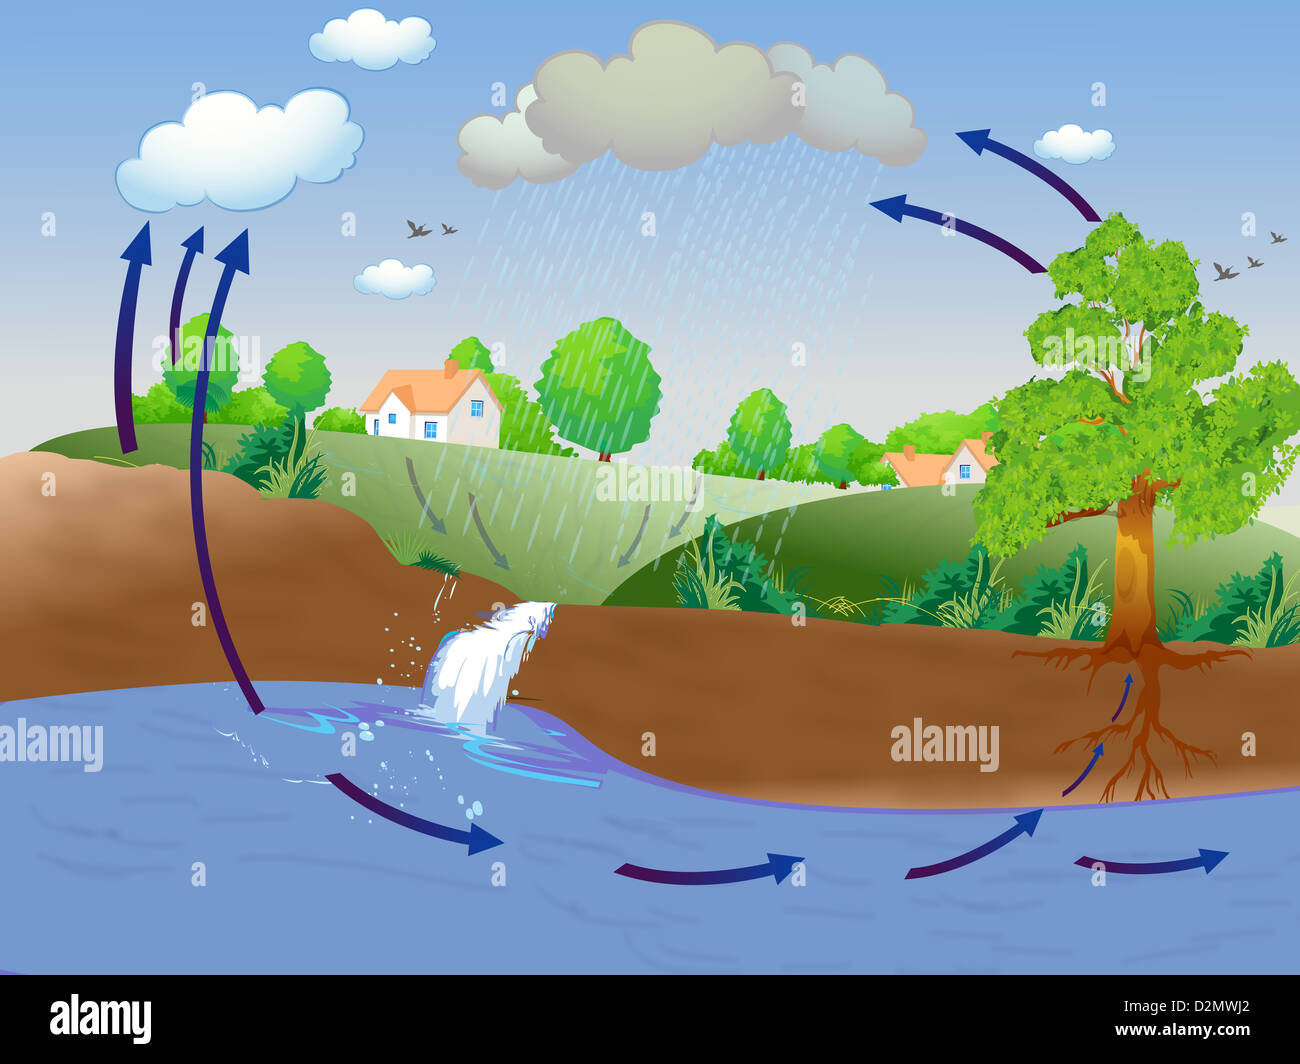 Illustration showing water cycle - Stock Image